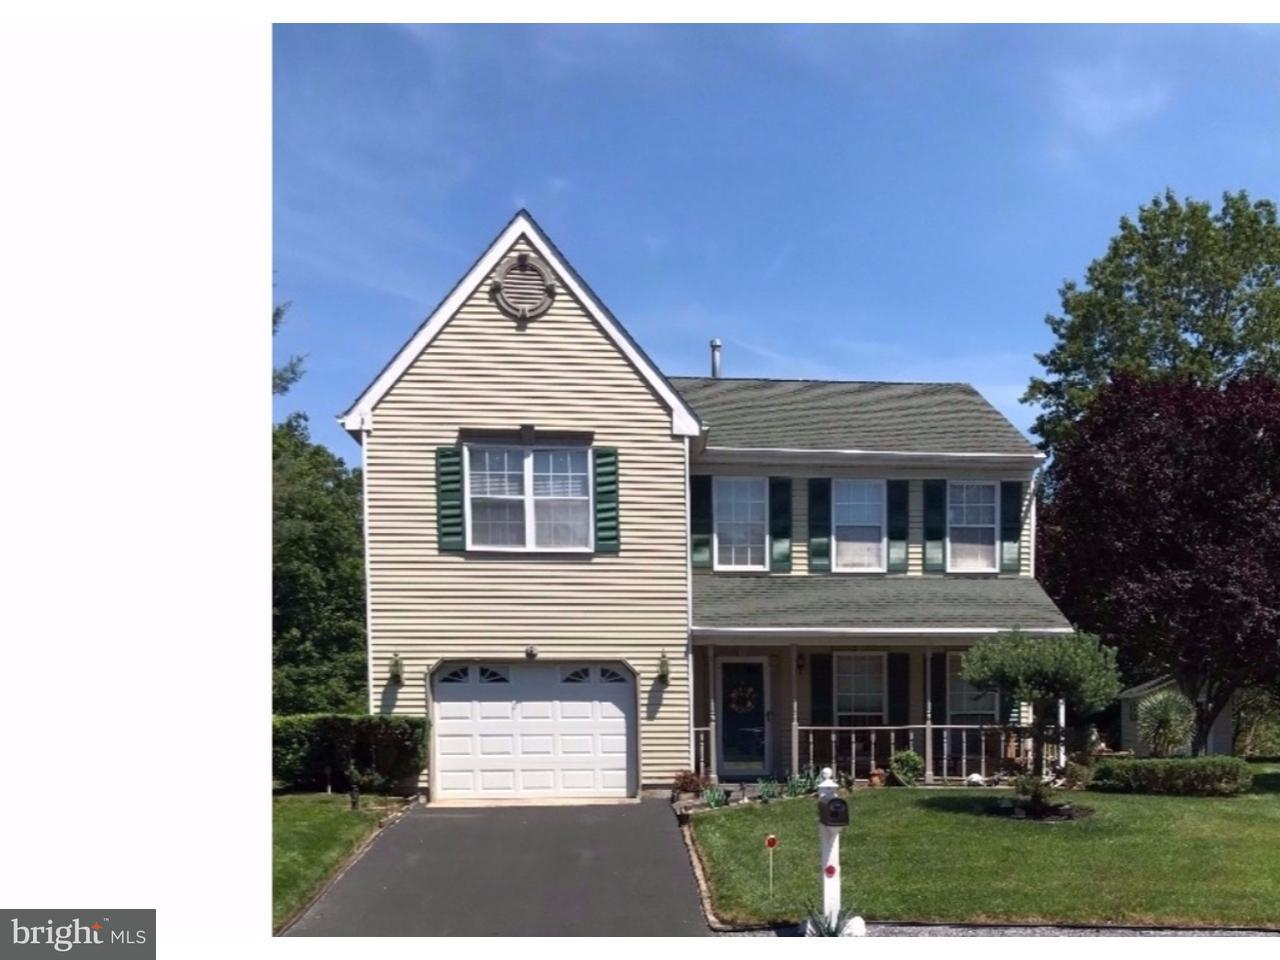 Single Family Home for Sale at 156 NAVESINK Court Galloway, New Jersey 08205 United States